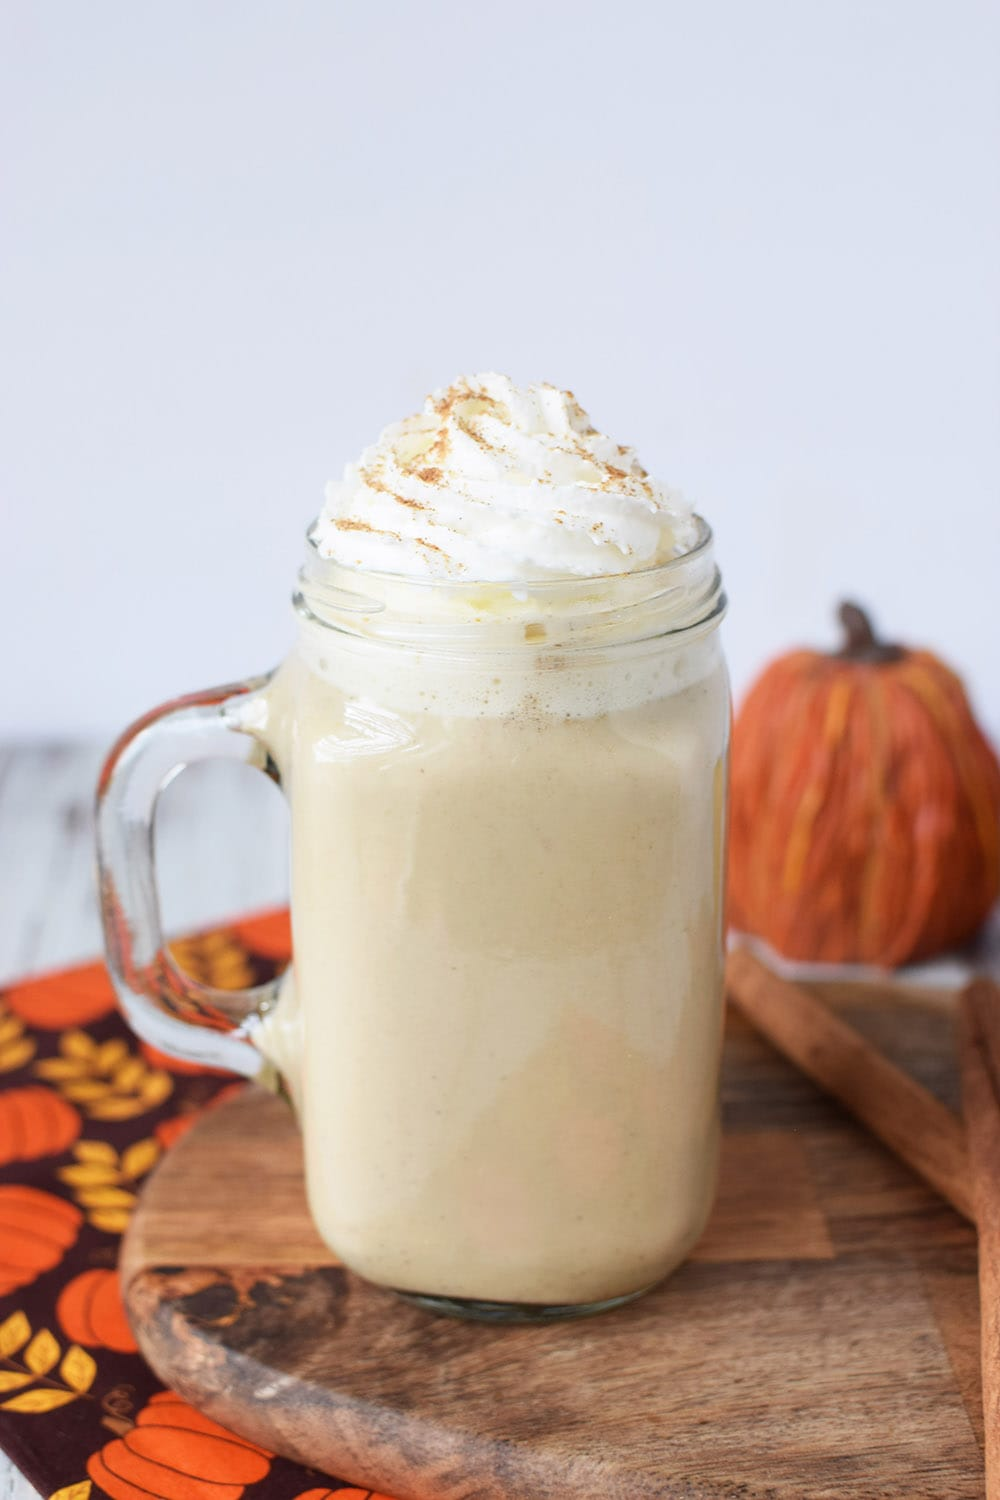 Pumpkin spice latte topped with whipped cream and cinnamon sitting by pumpkins